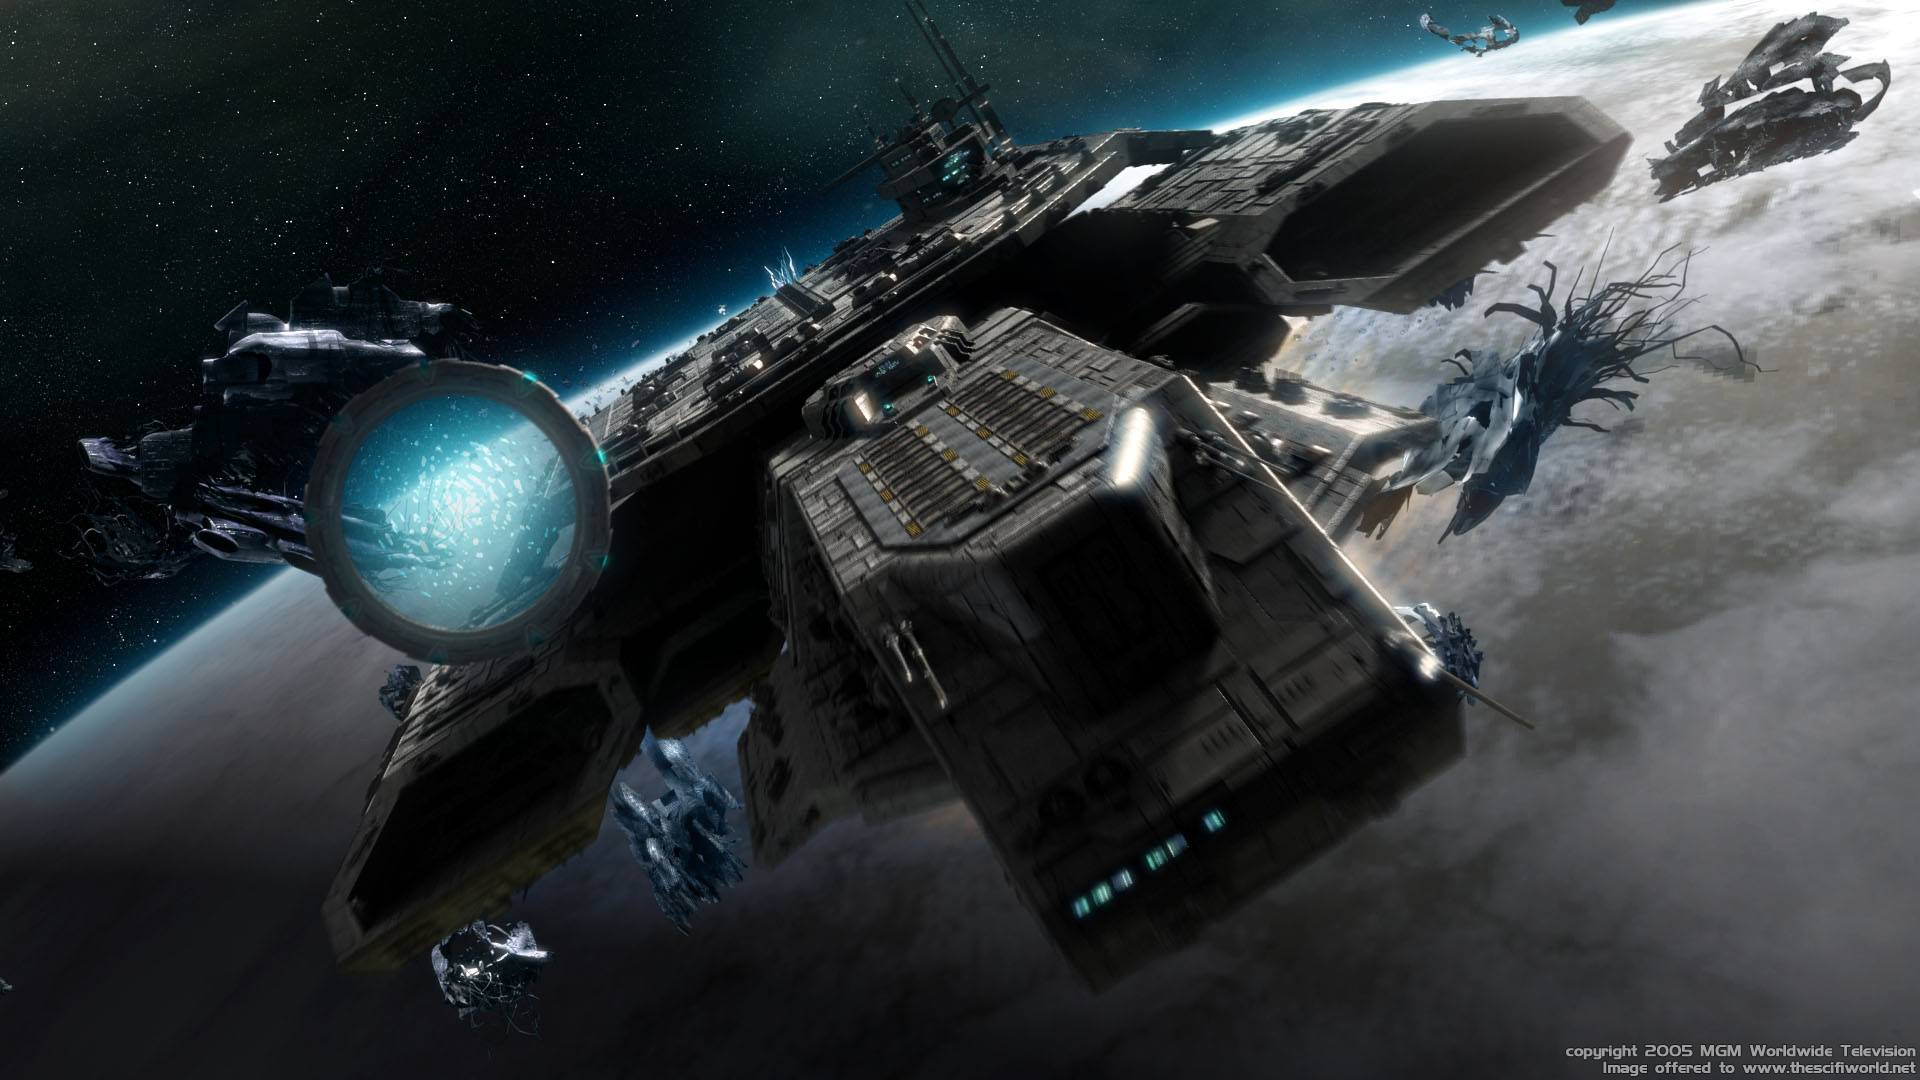 Outer Space Wallpaper 1920x1080 Outer Space Movies Stargate 1920x1080